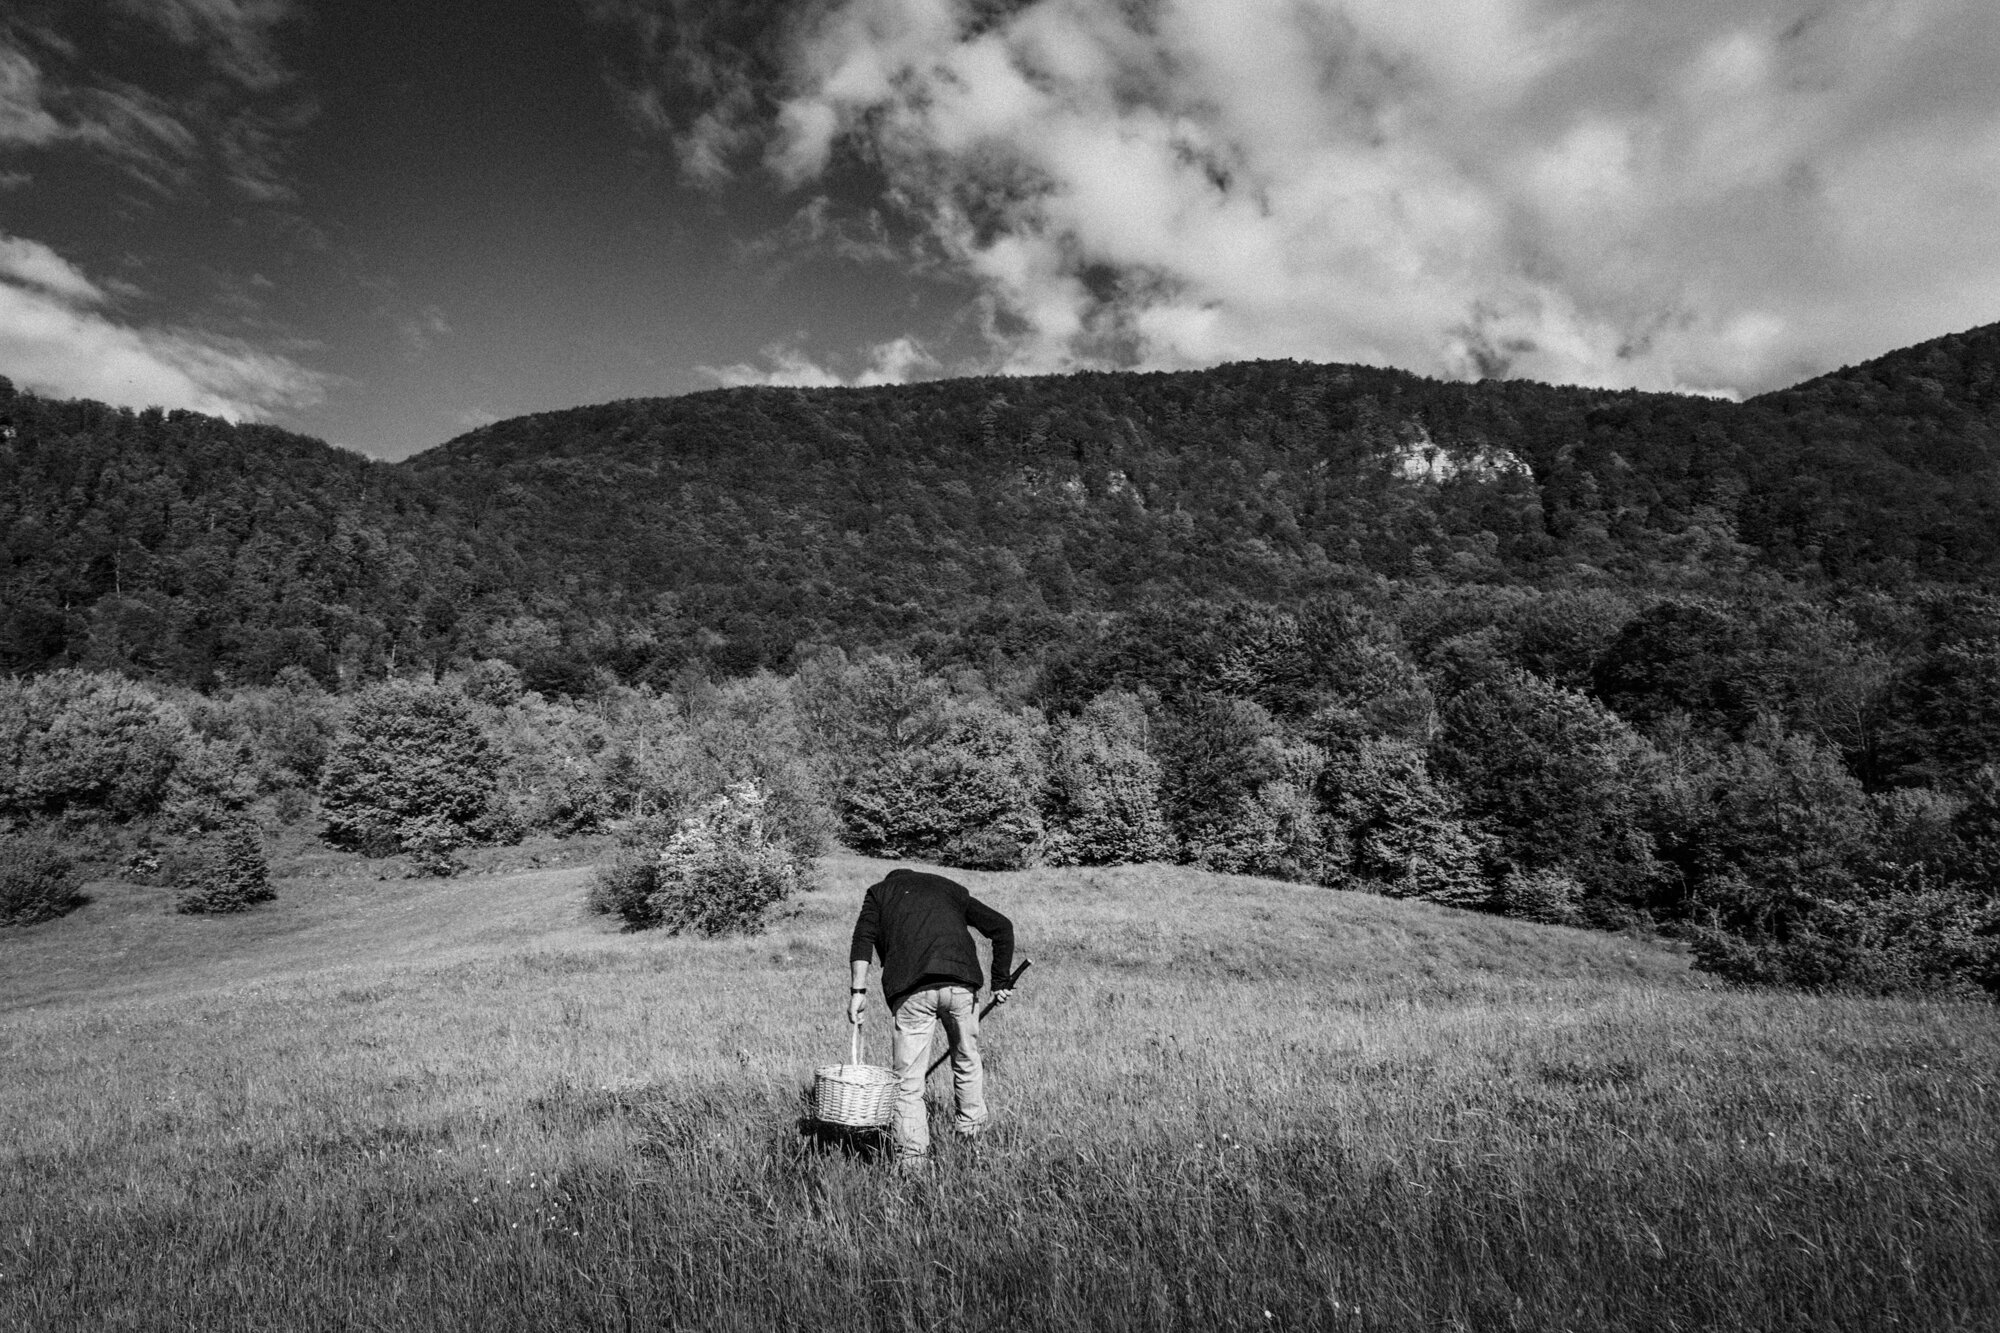 Capracotta (IS), May 2016. A local mushrooms hunter during his daily research.